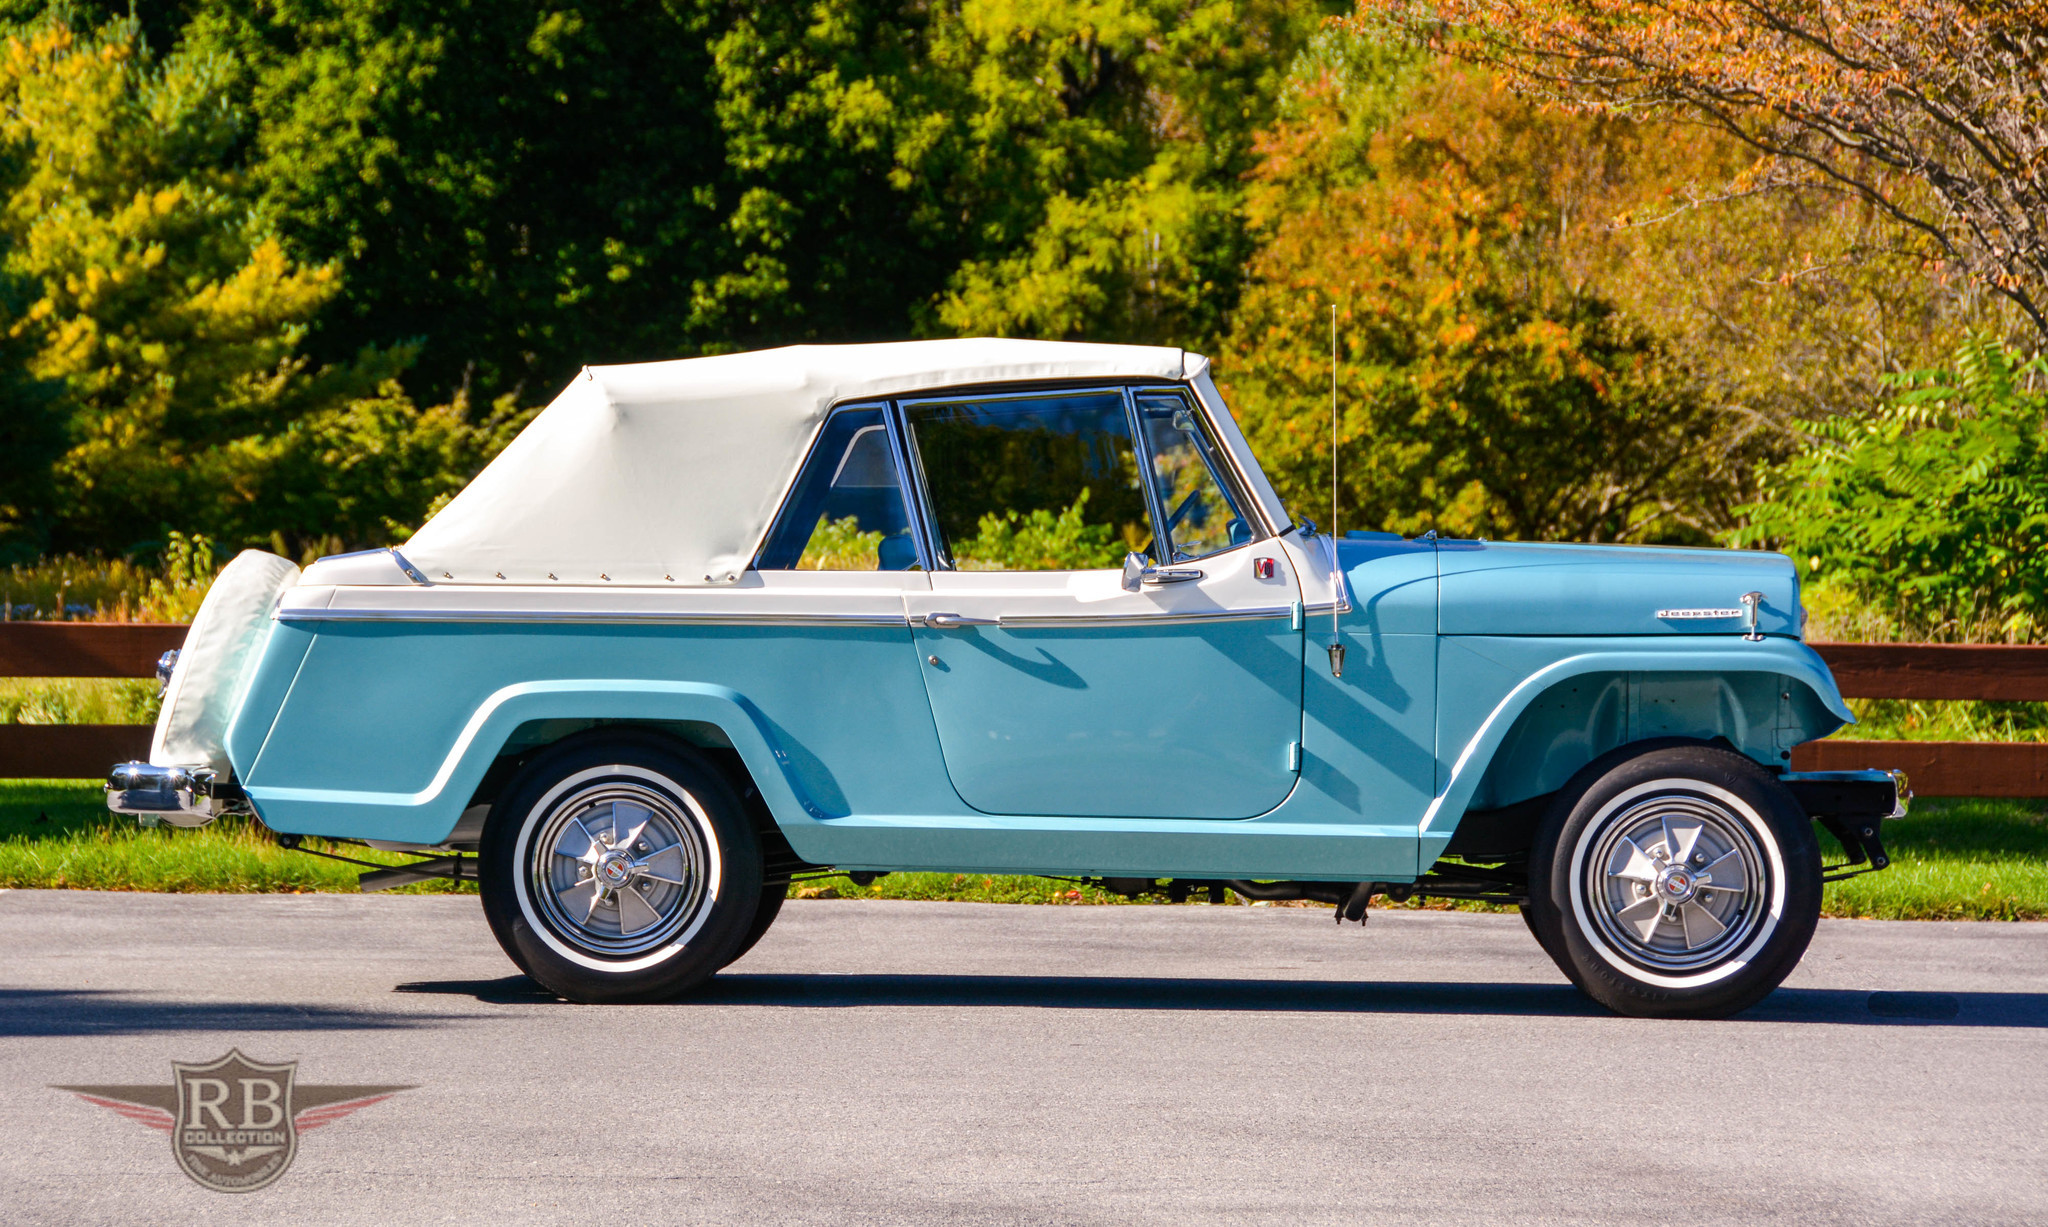 Cars For Sale In Delaware >> 1967 Kaiser Jeepster Commando Convertible Deluxe - The Morning Call